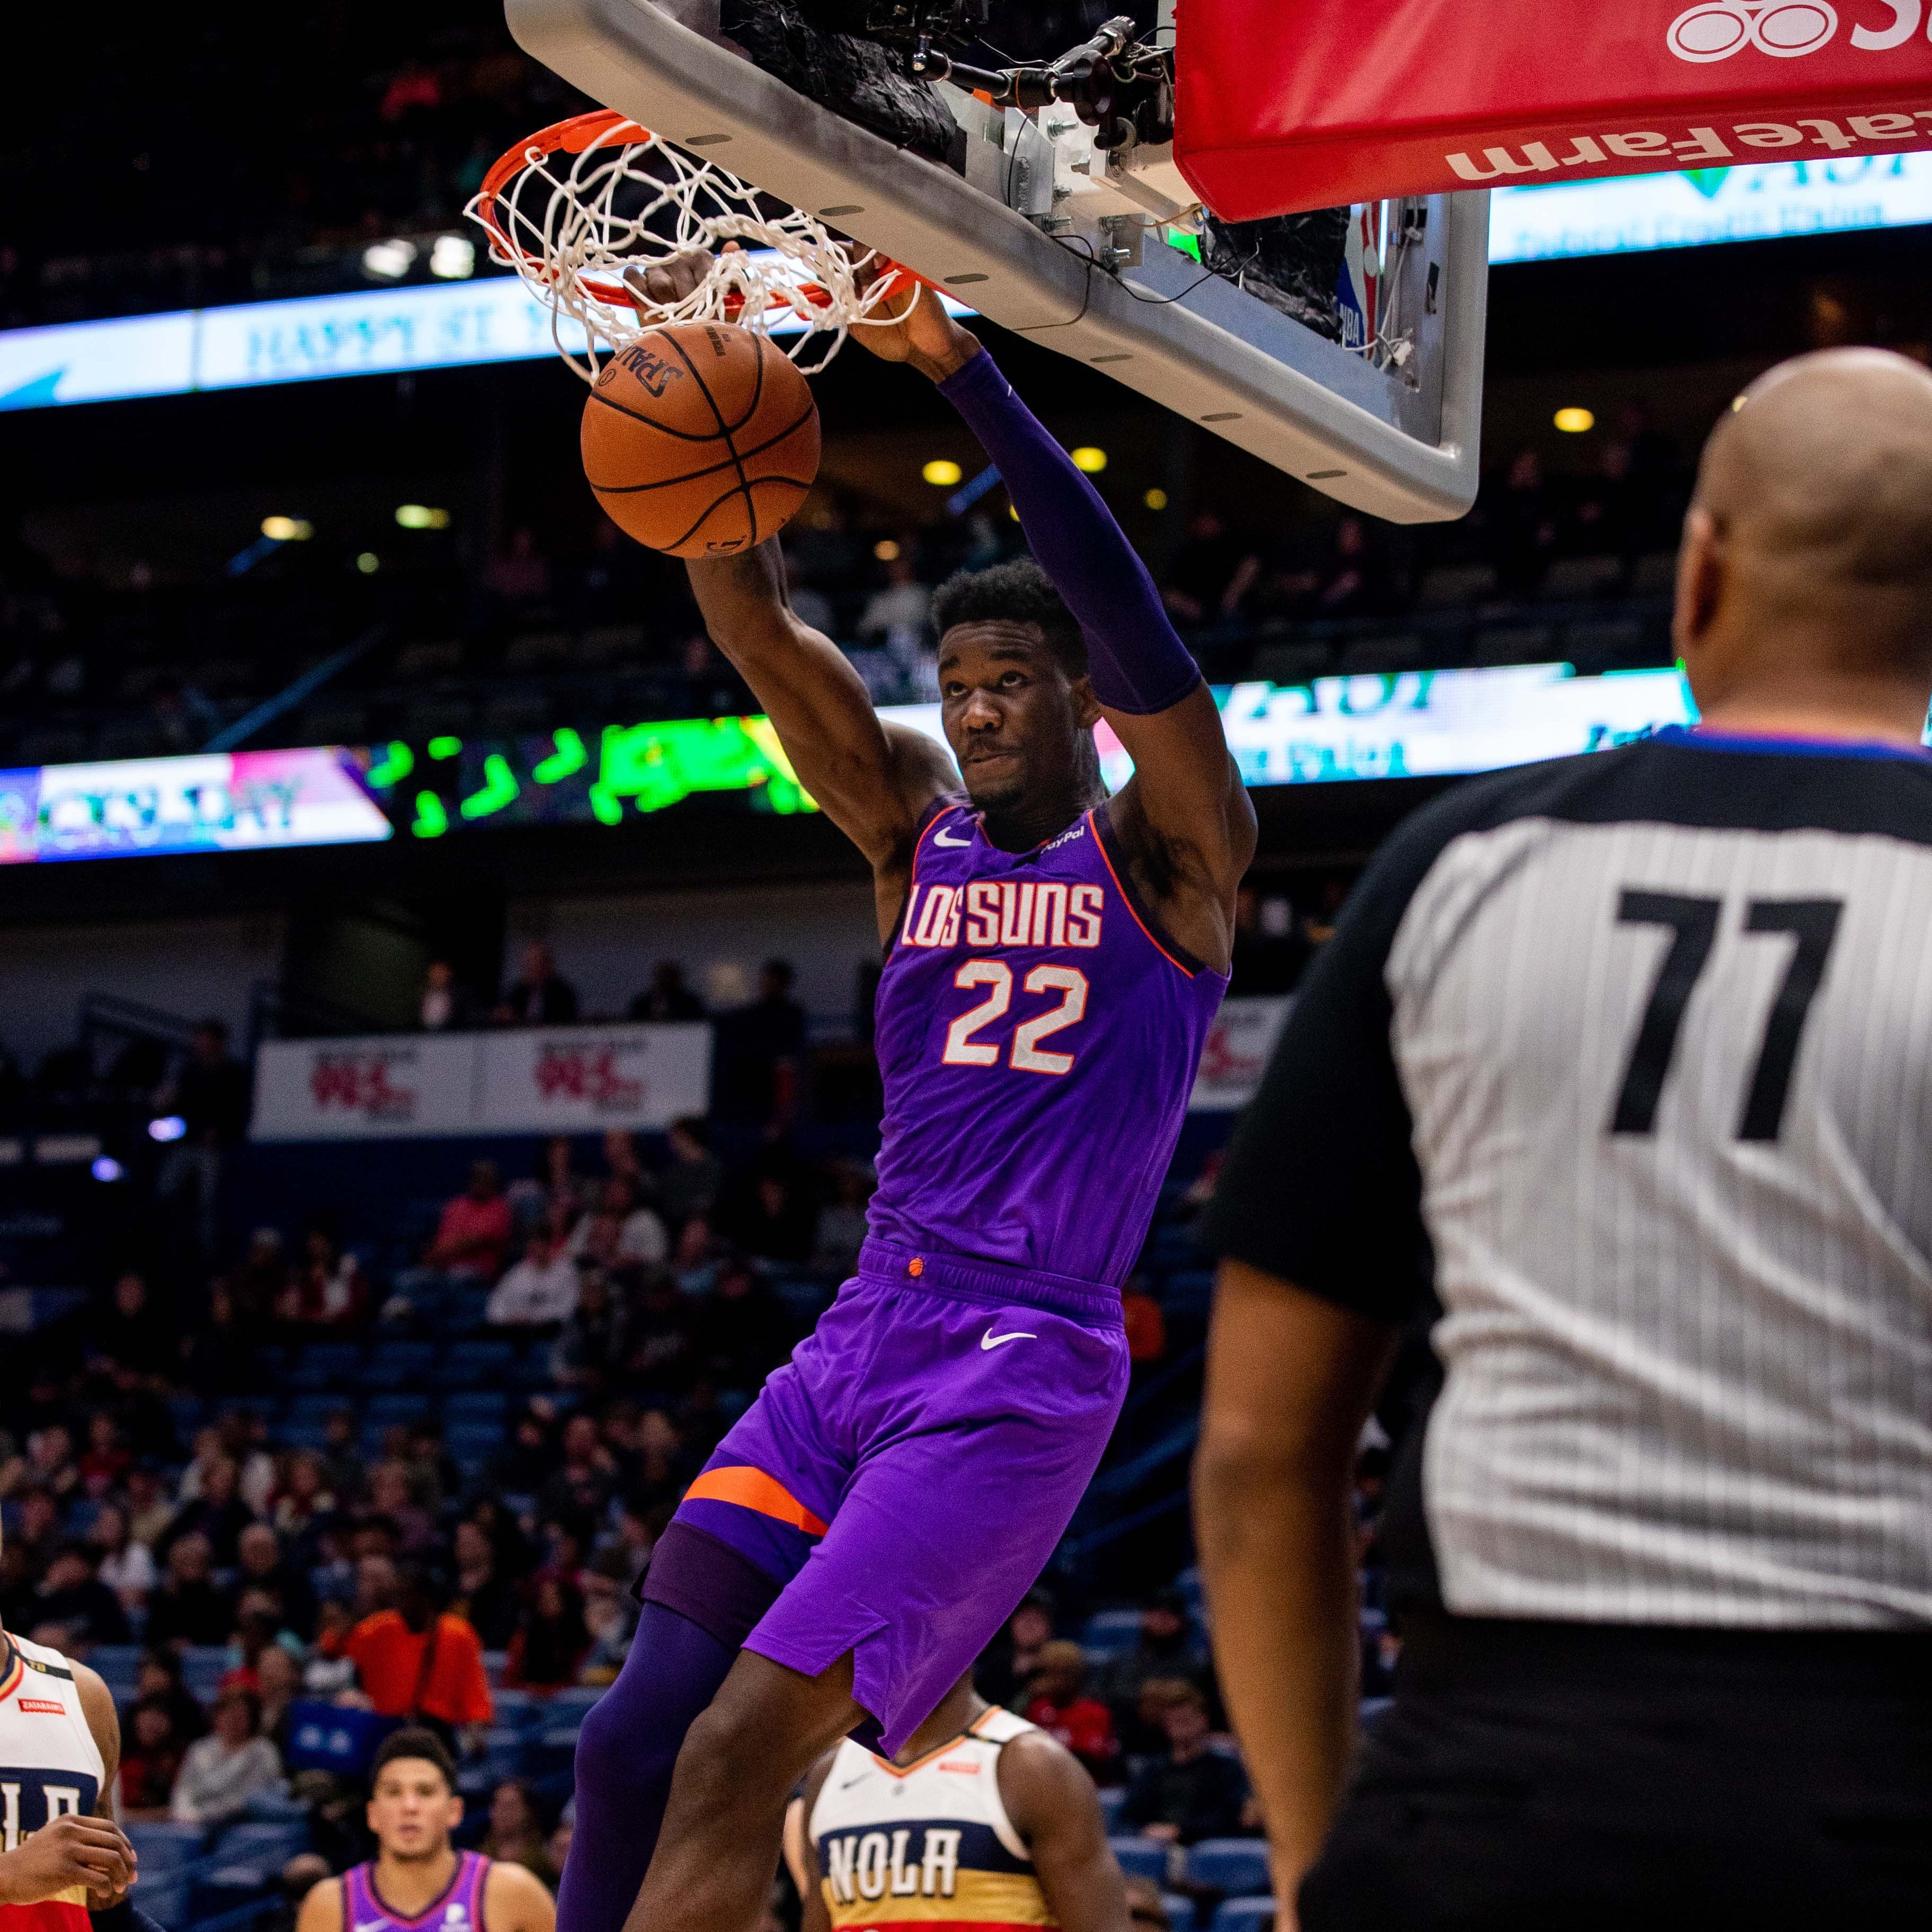 Phoenix Suns rookie Deandre Ayton's first career ejection met with amazement